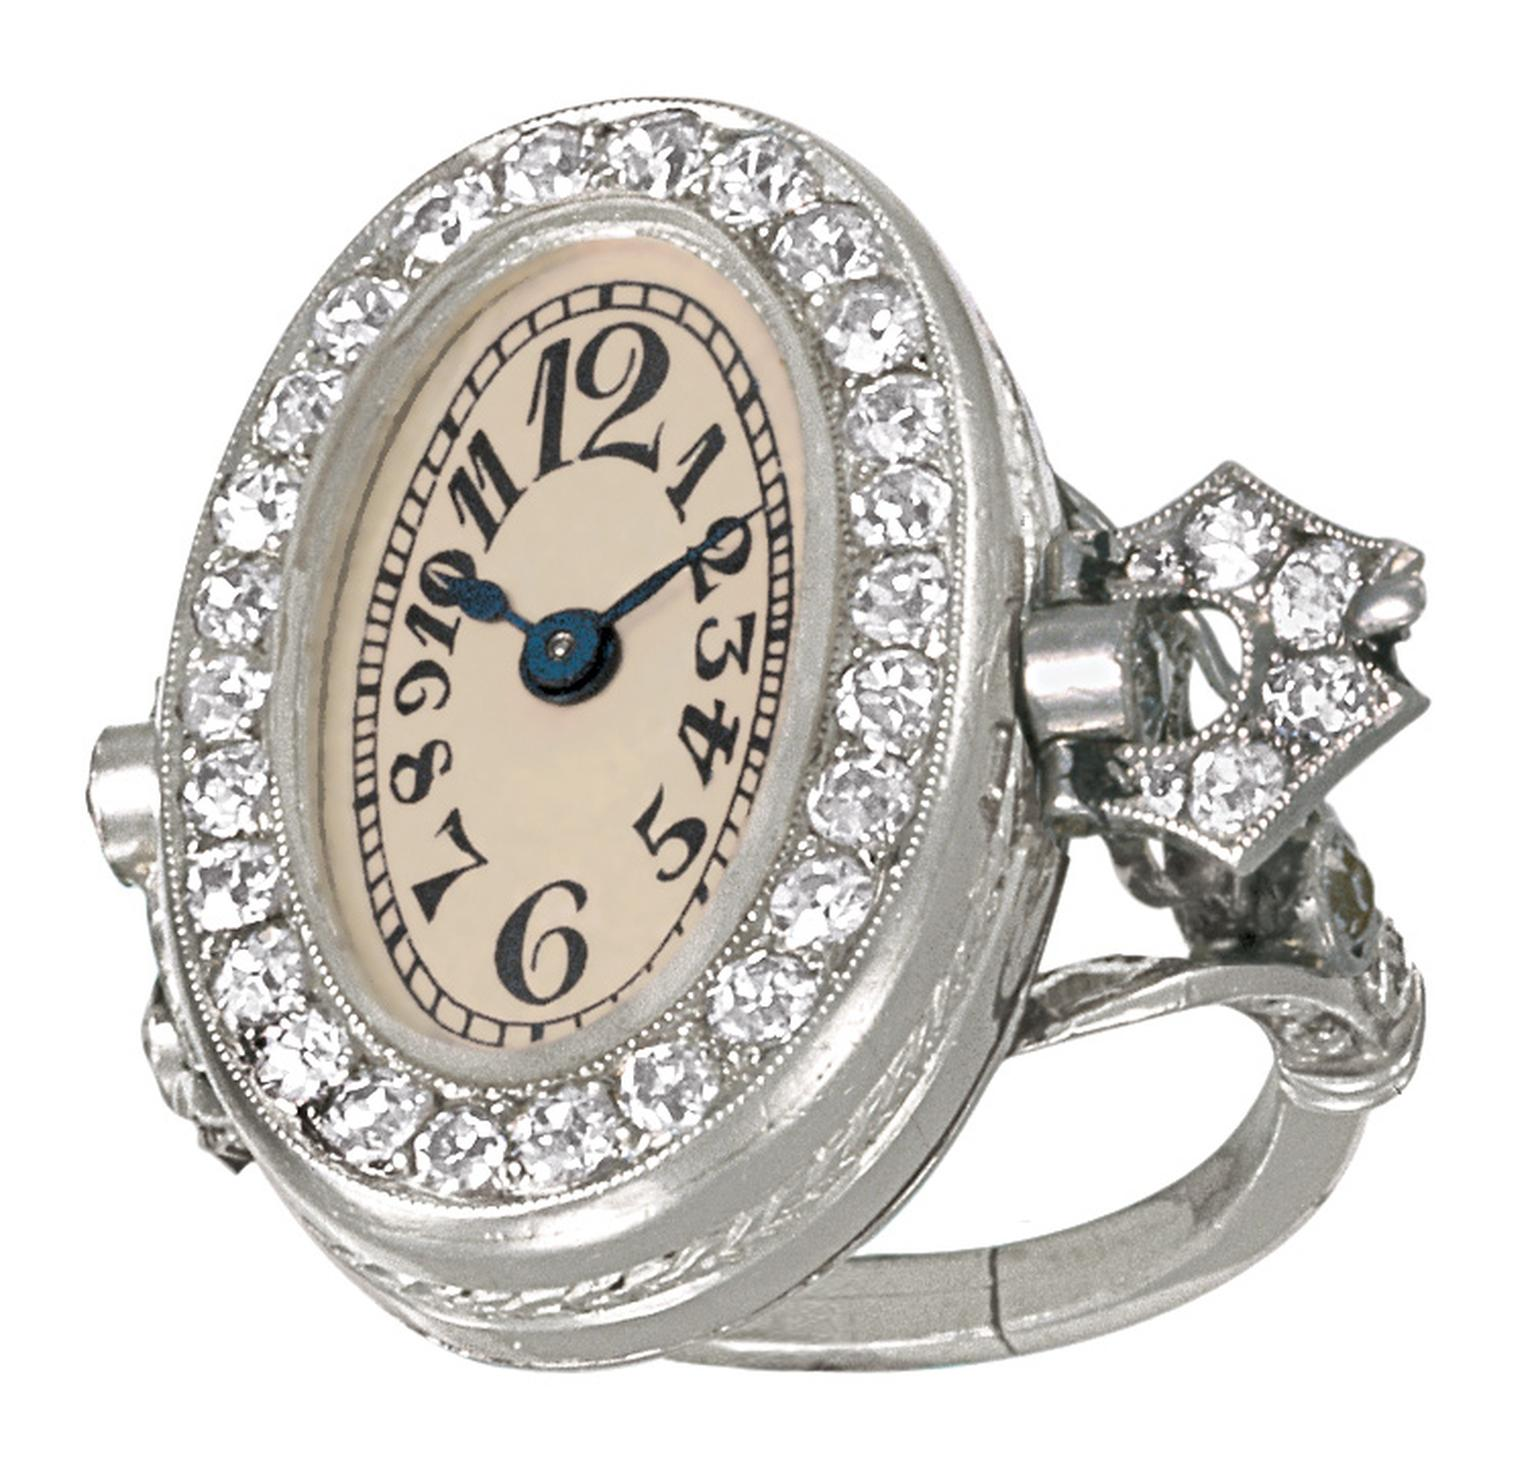 Patek-Philippe-P0605_aq1_200_ring-watch.jpg